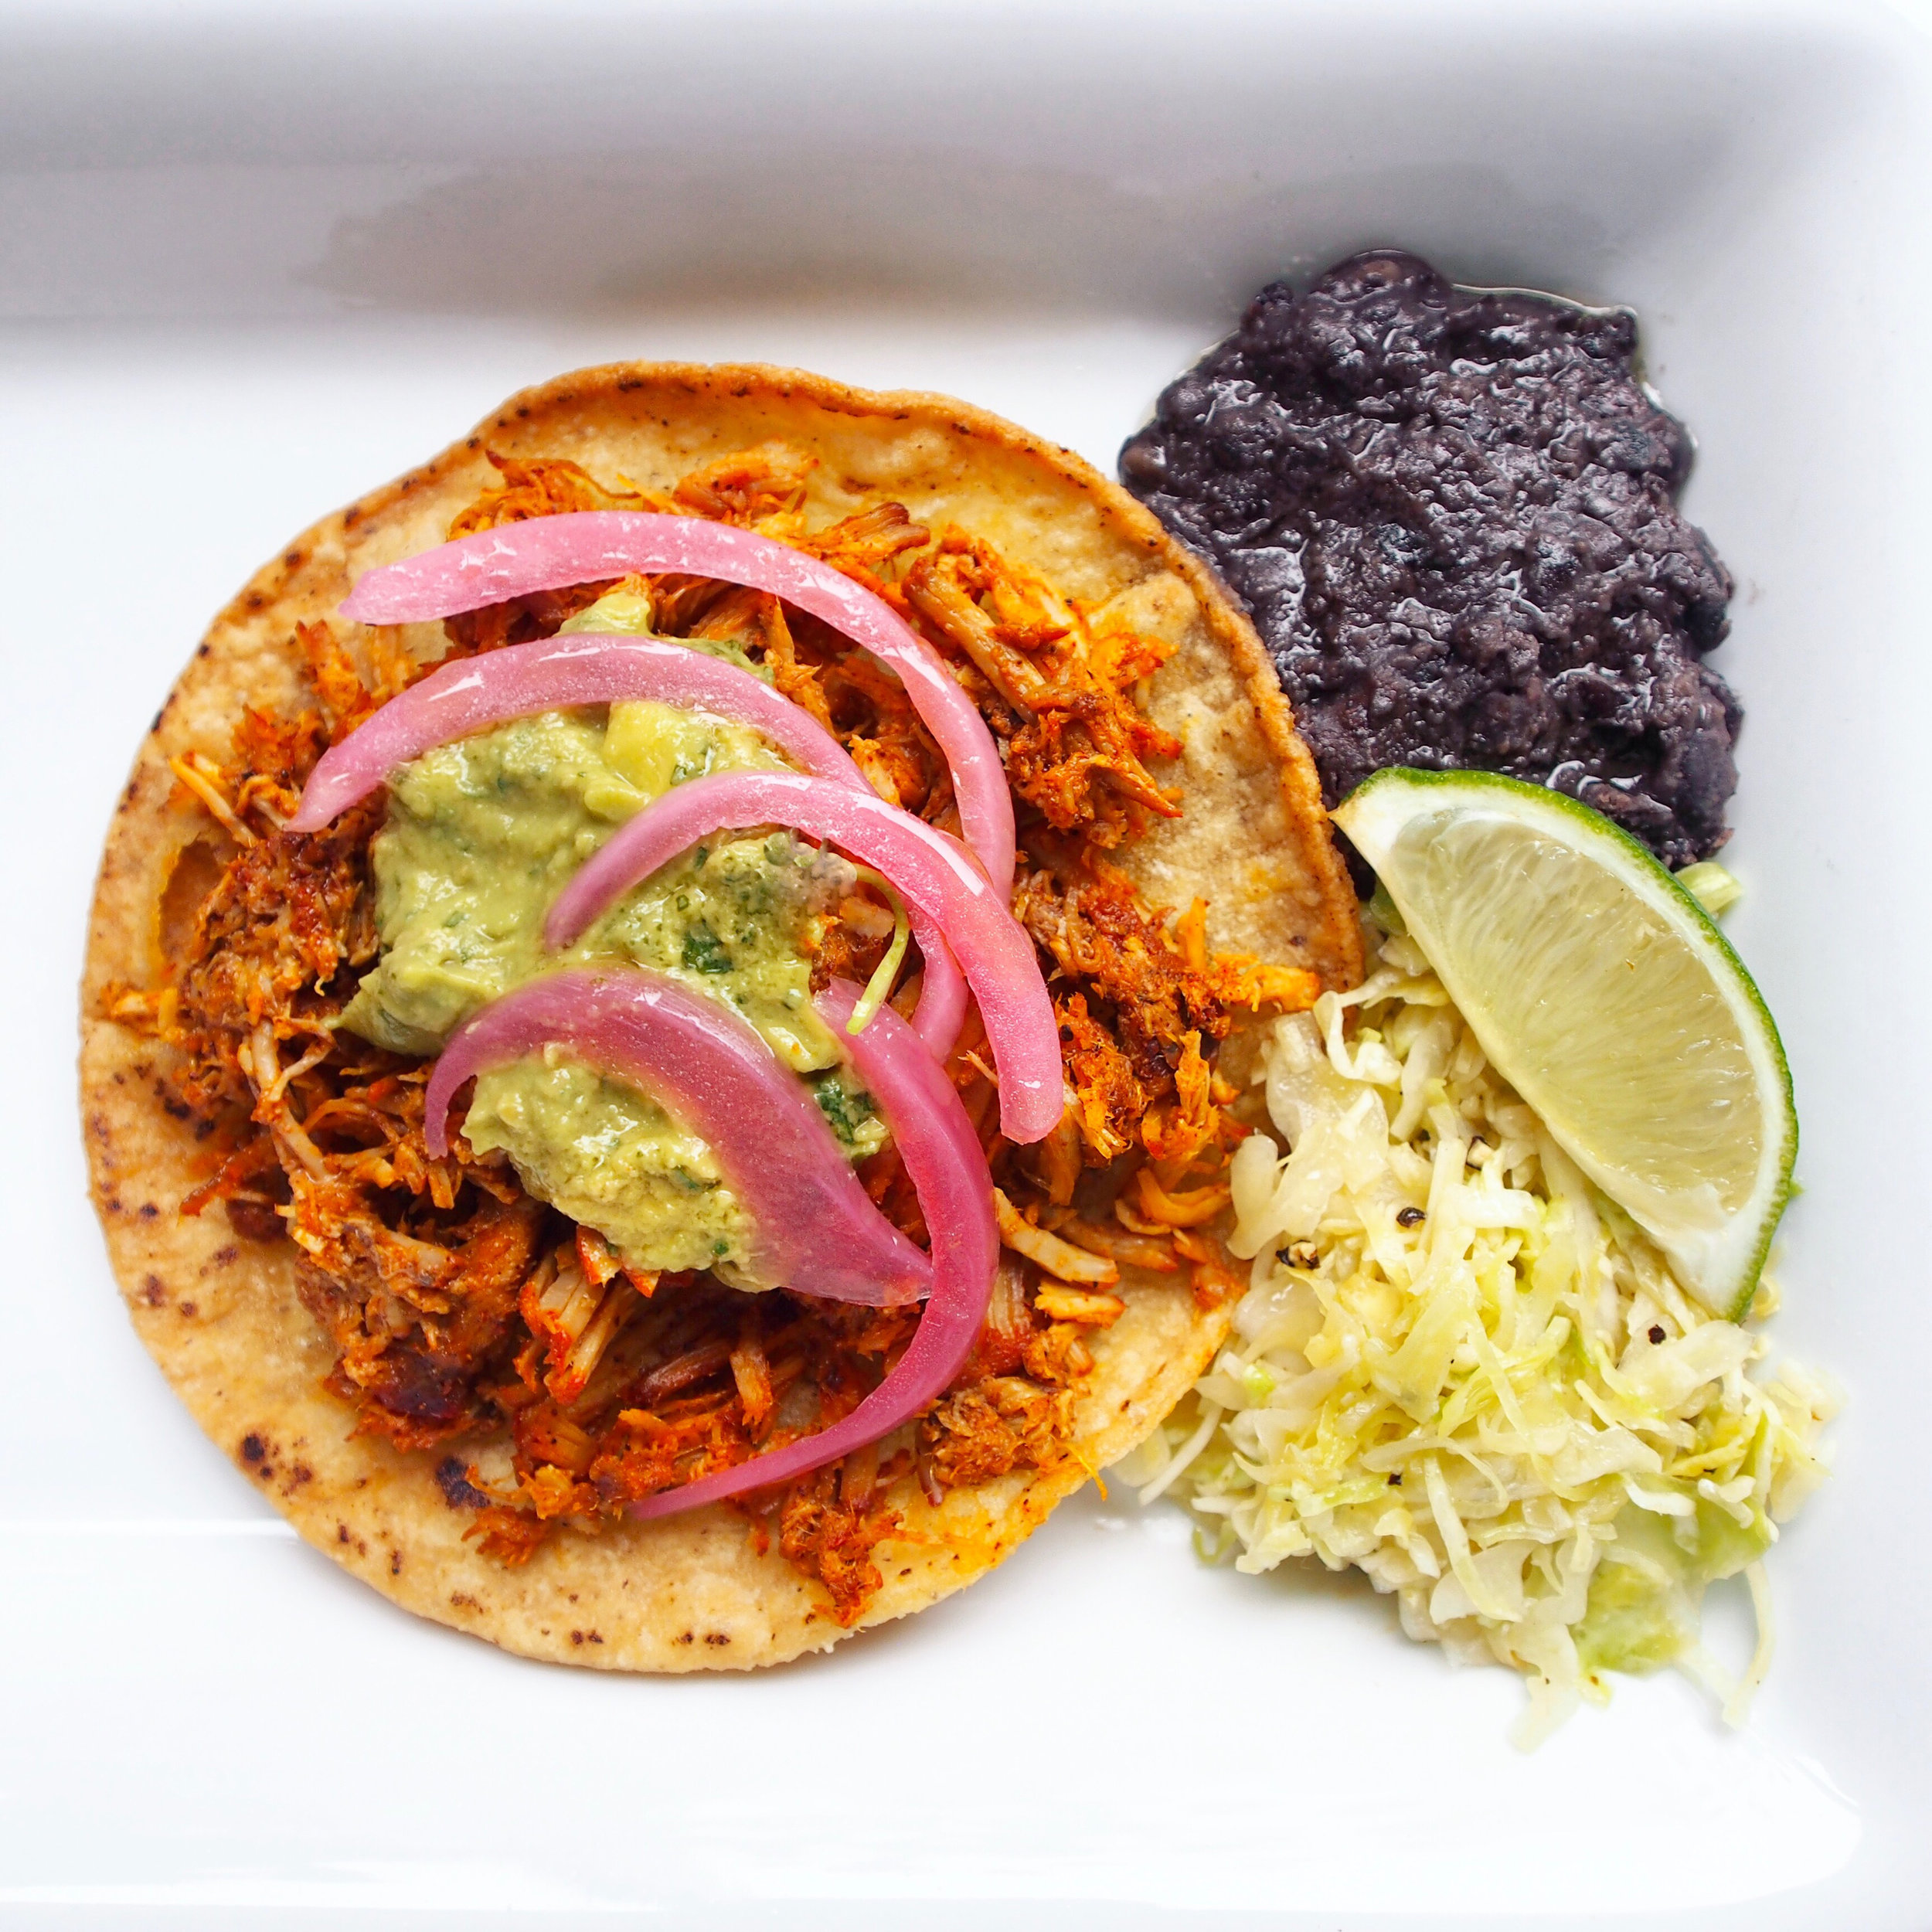 A cochinita pibil taco is served with barbecued pork, avocado salsa, and pickled red onions. Served on the side with cabbage slaw and refried beans! An easy taco recipe, but takes some time.